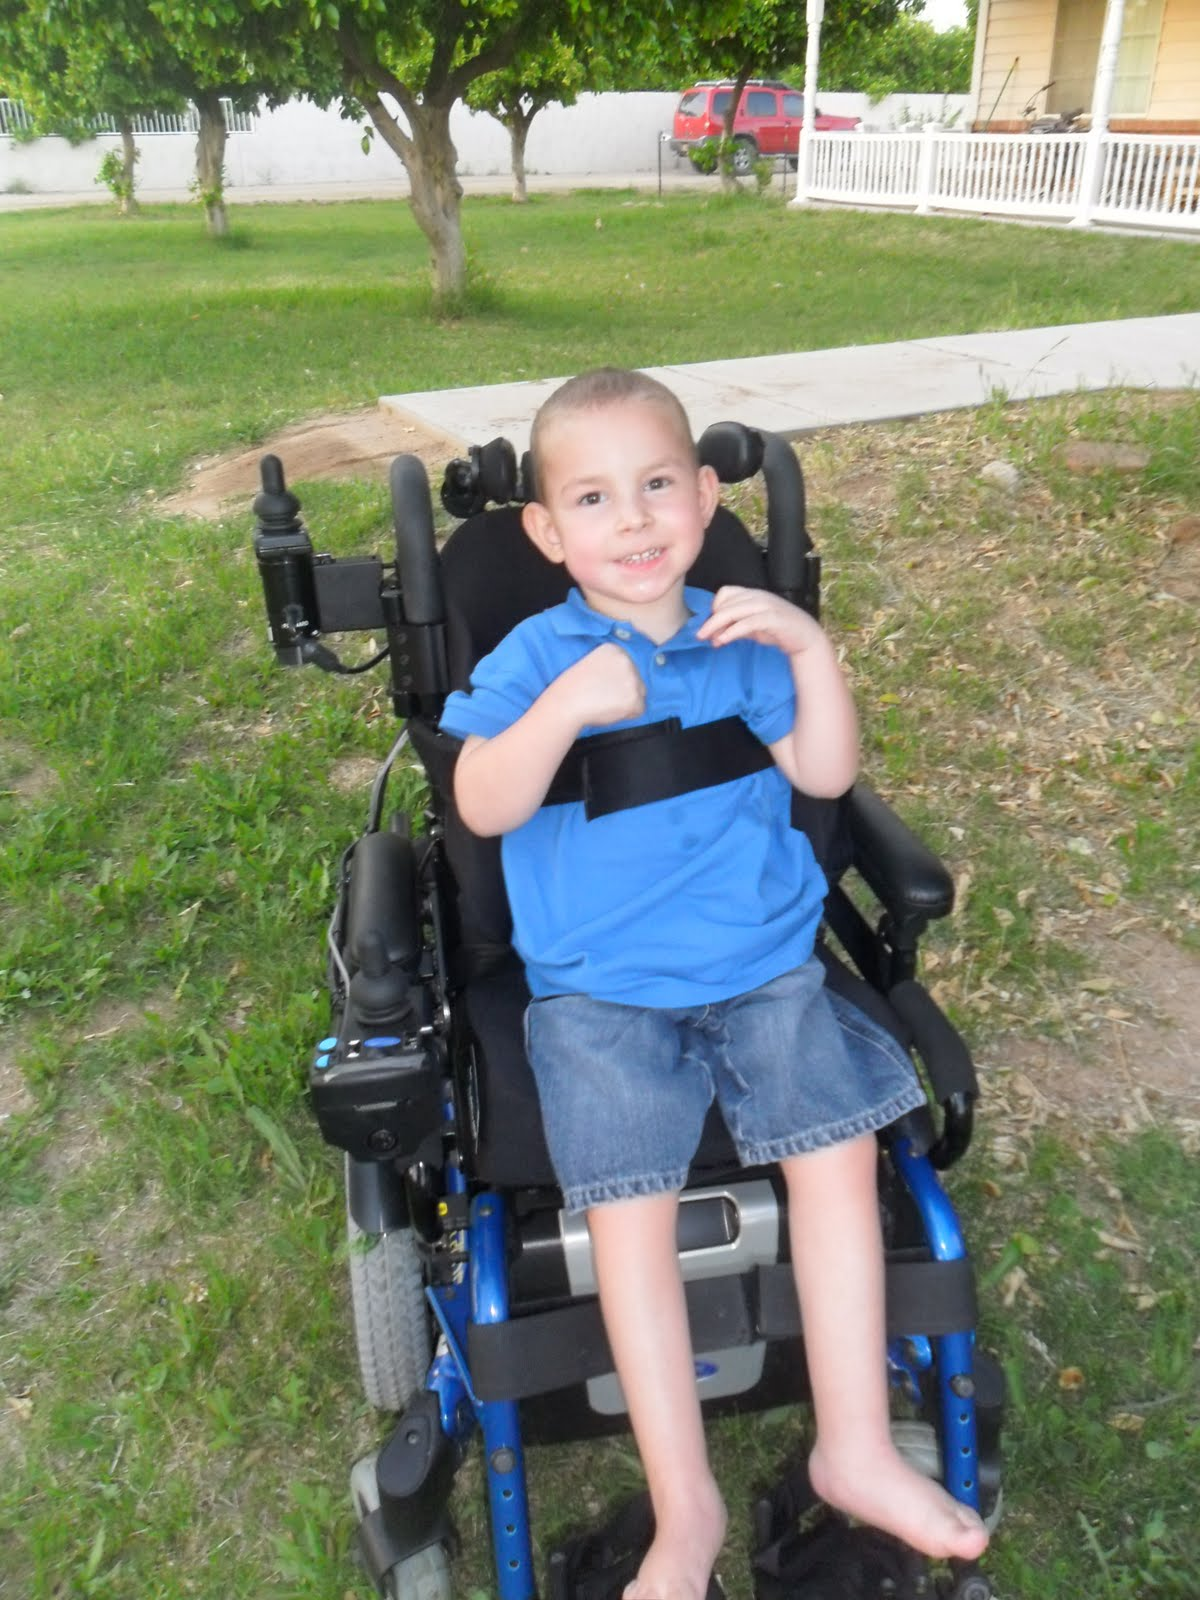 Power wheelchair kids - Bryce Already Enjoys His New Independence He Can Actually Get Out And Play With The Other Kids It Makes A Mom S Heart Happy